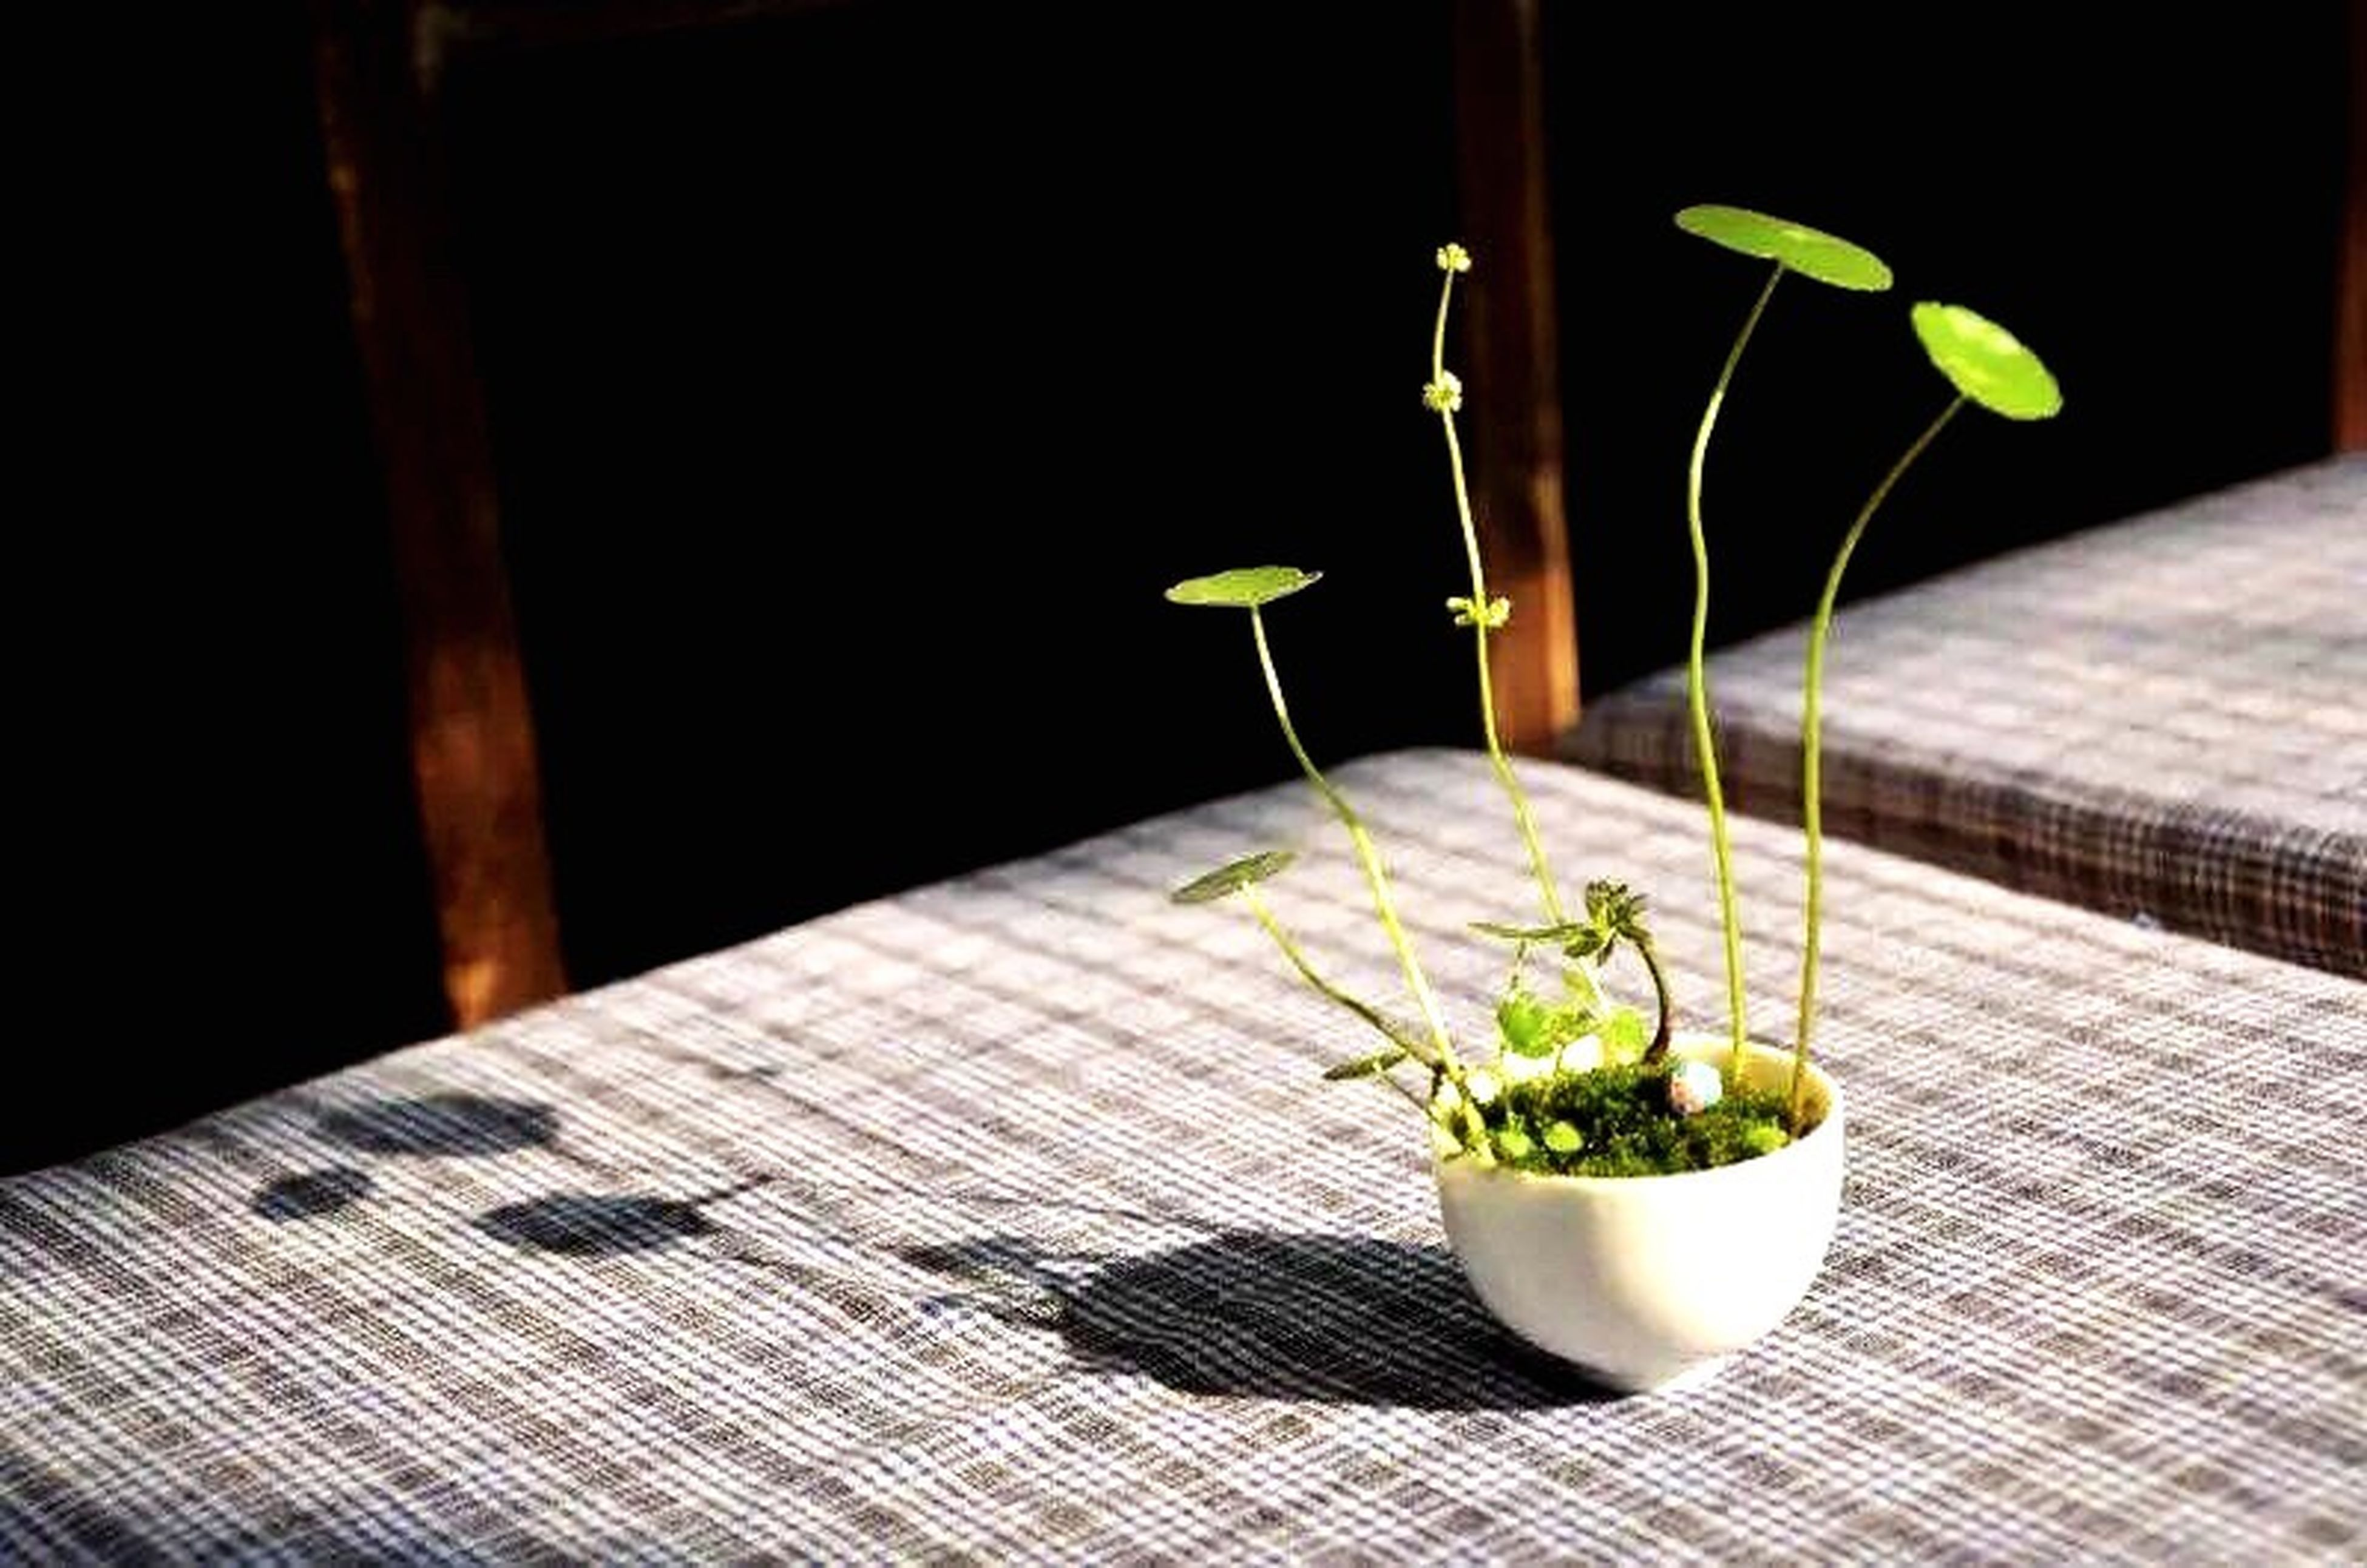 table, indoors, leaf, potted plant, green color, freshness, plant, growth, wood - material, close-up, food and drink, home interior, sunlight, shadow, still life, focus on foreground, no people, flooring, high angle view, wooden